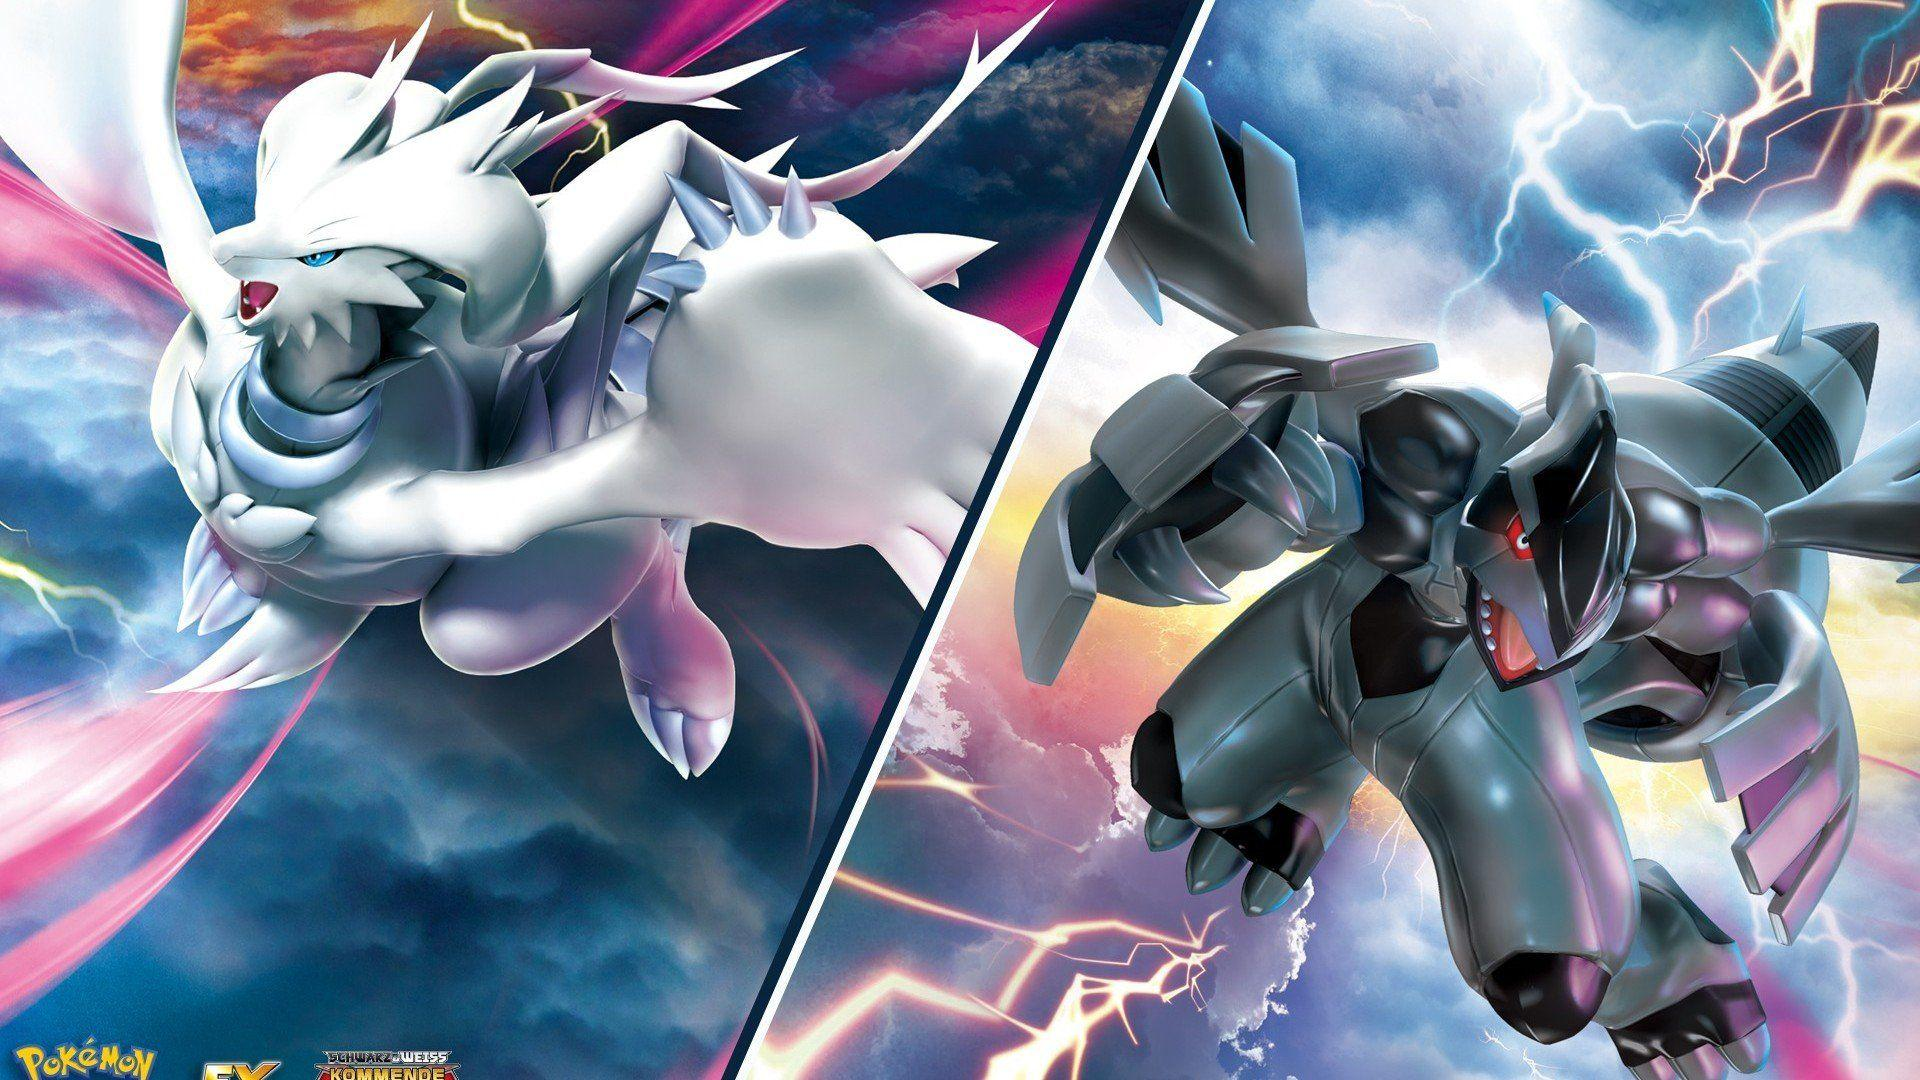 Pokemon Zekrom Vs Reshiram Wallpapers